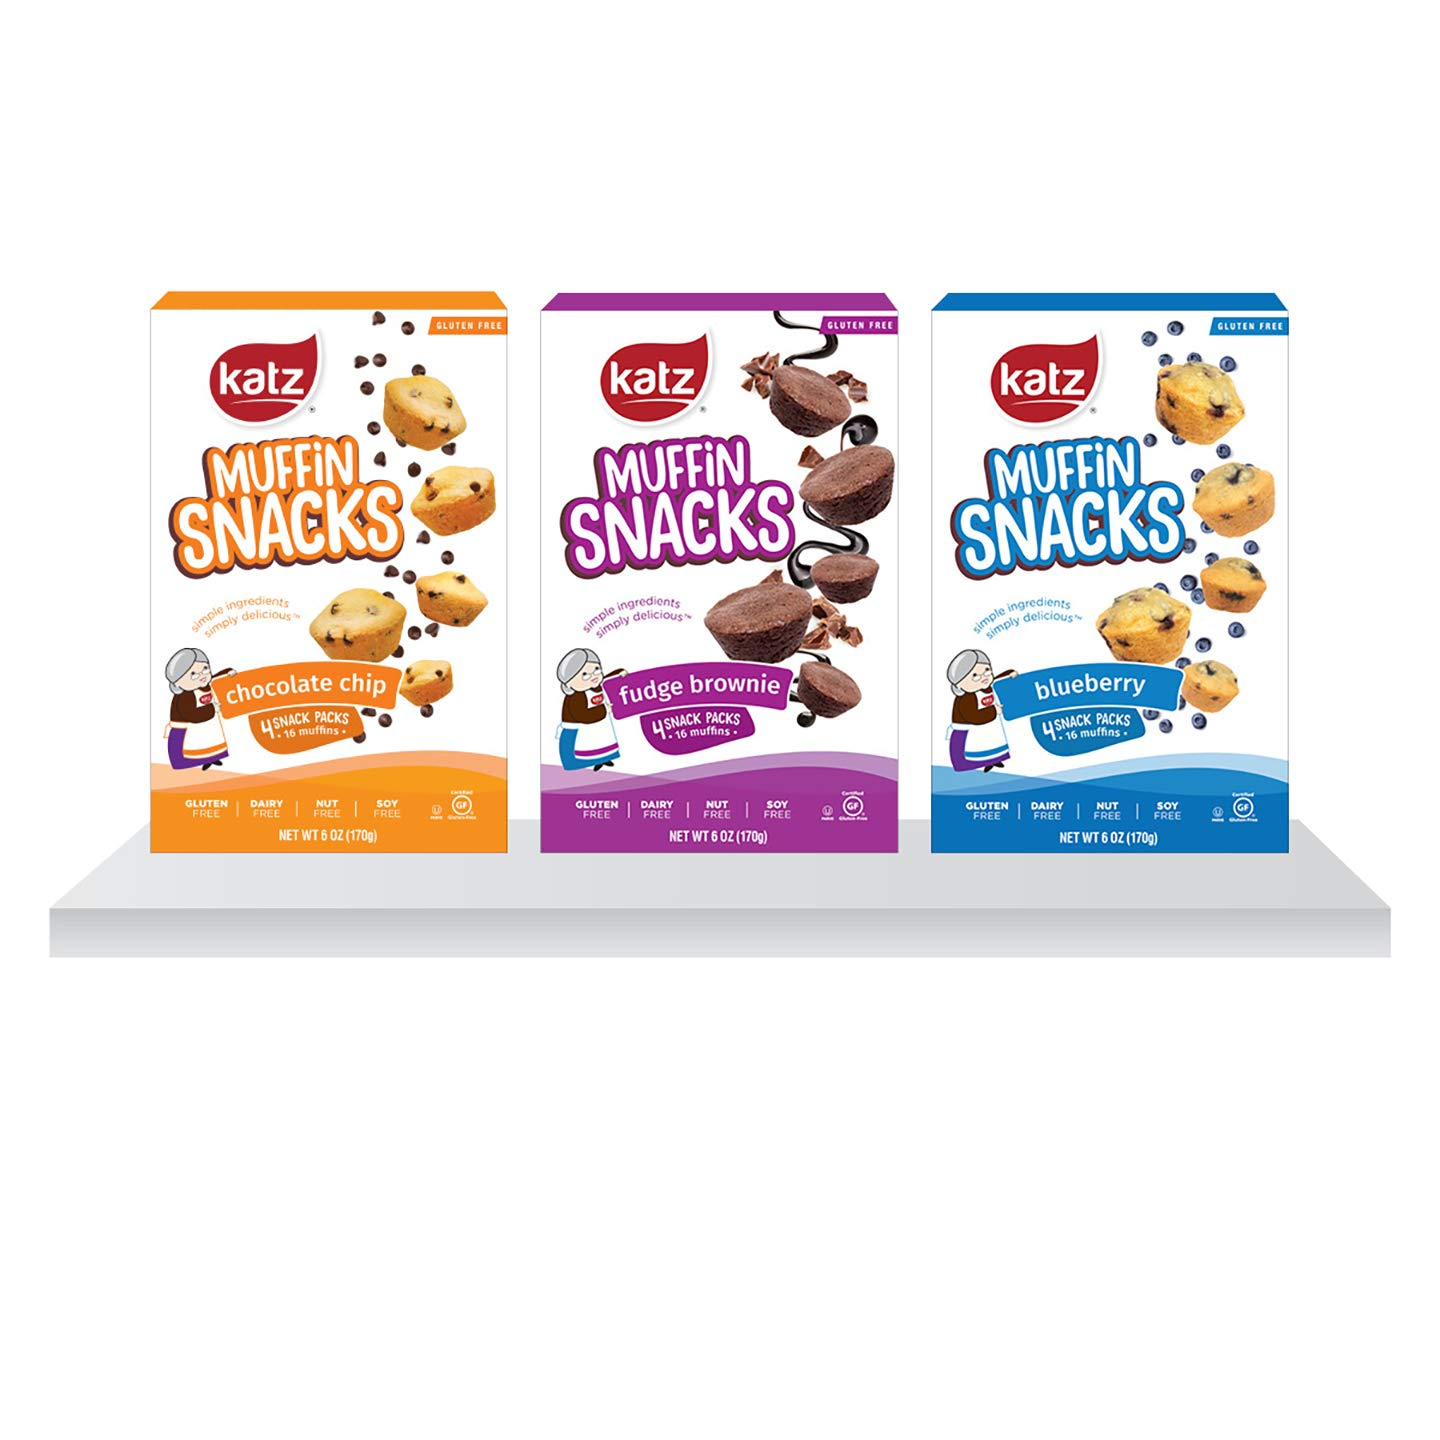 Katz Gluten Free Muffin Snack Variety Pack | Dairy Free, Nut Free, Soy Free, Gluten Free | Kosher (3 Packs of 4 Muffins, 11 Ounce Each)